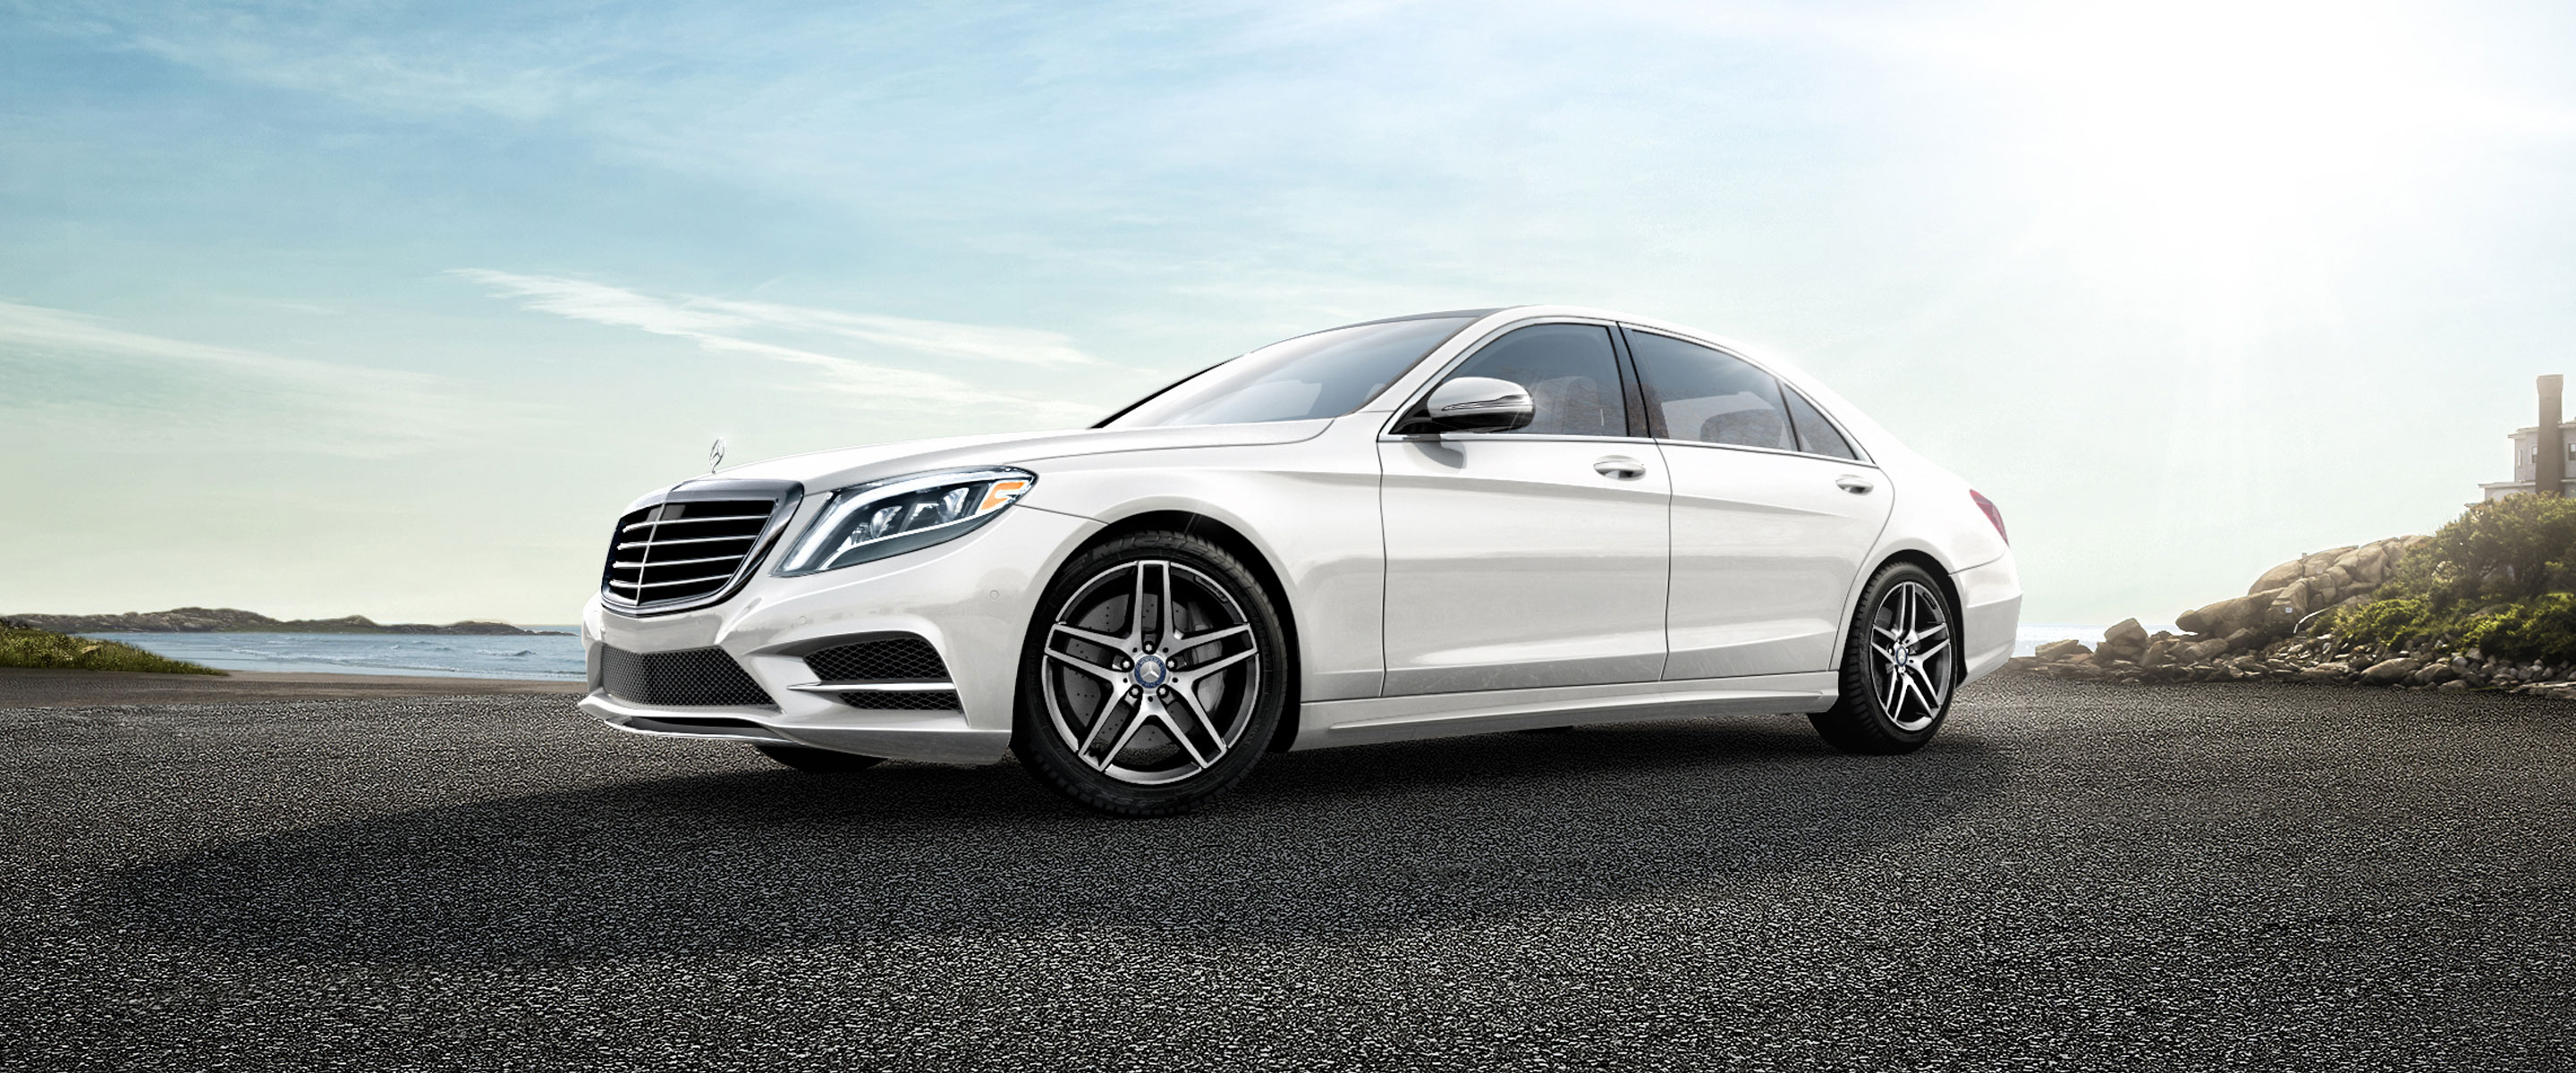 Mercedes Benz S Class Lease Price & fers Los Angeles CA